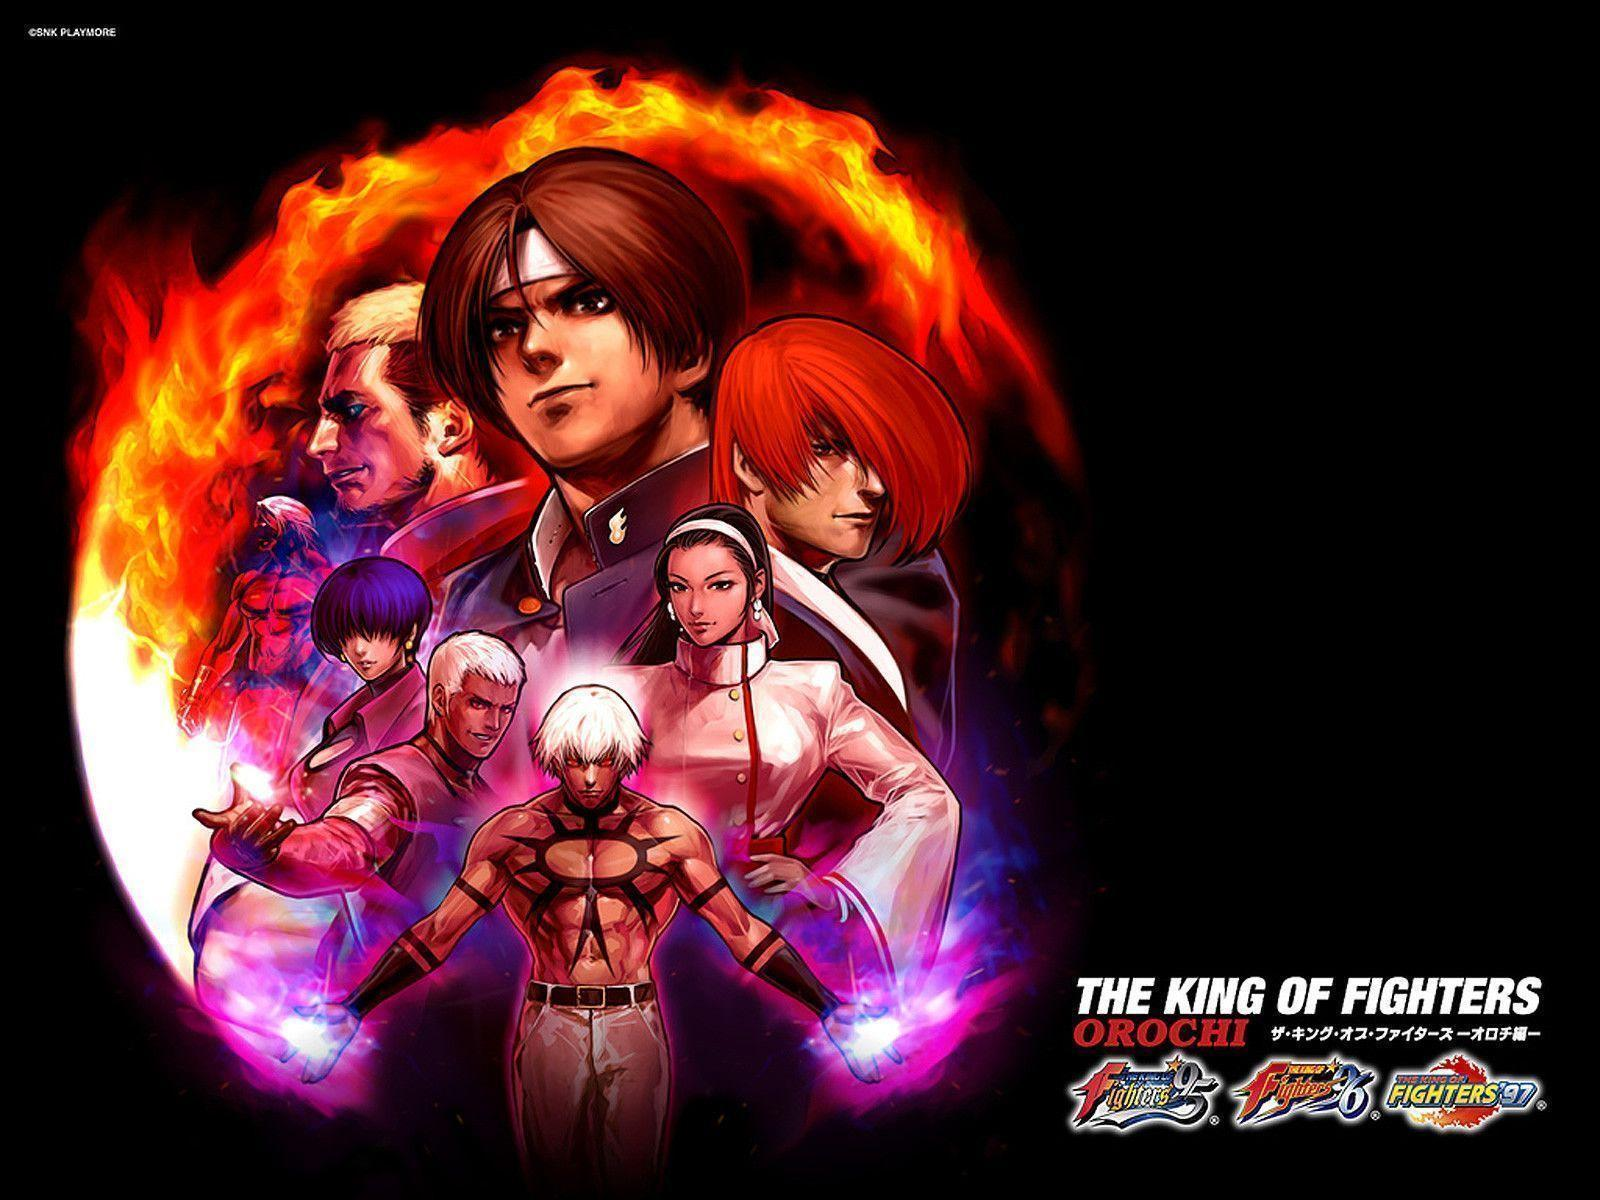 Free Download King Of Fighters Wallpapers 1600x1200 For Your